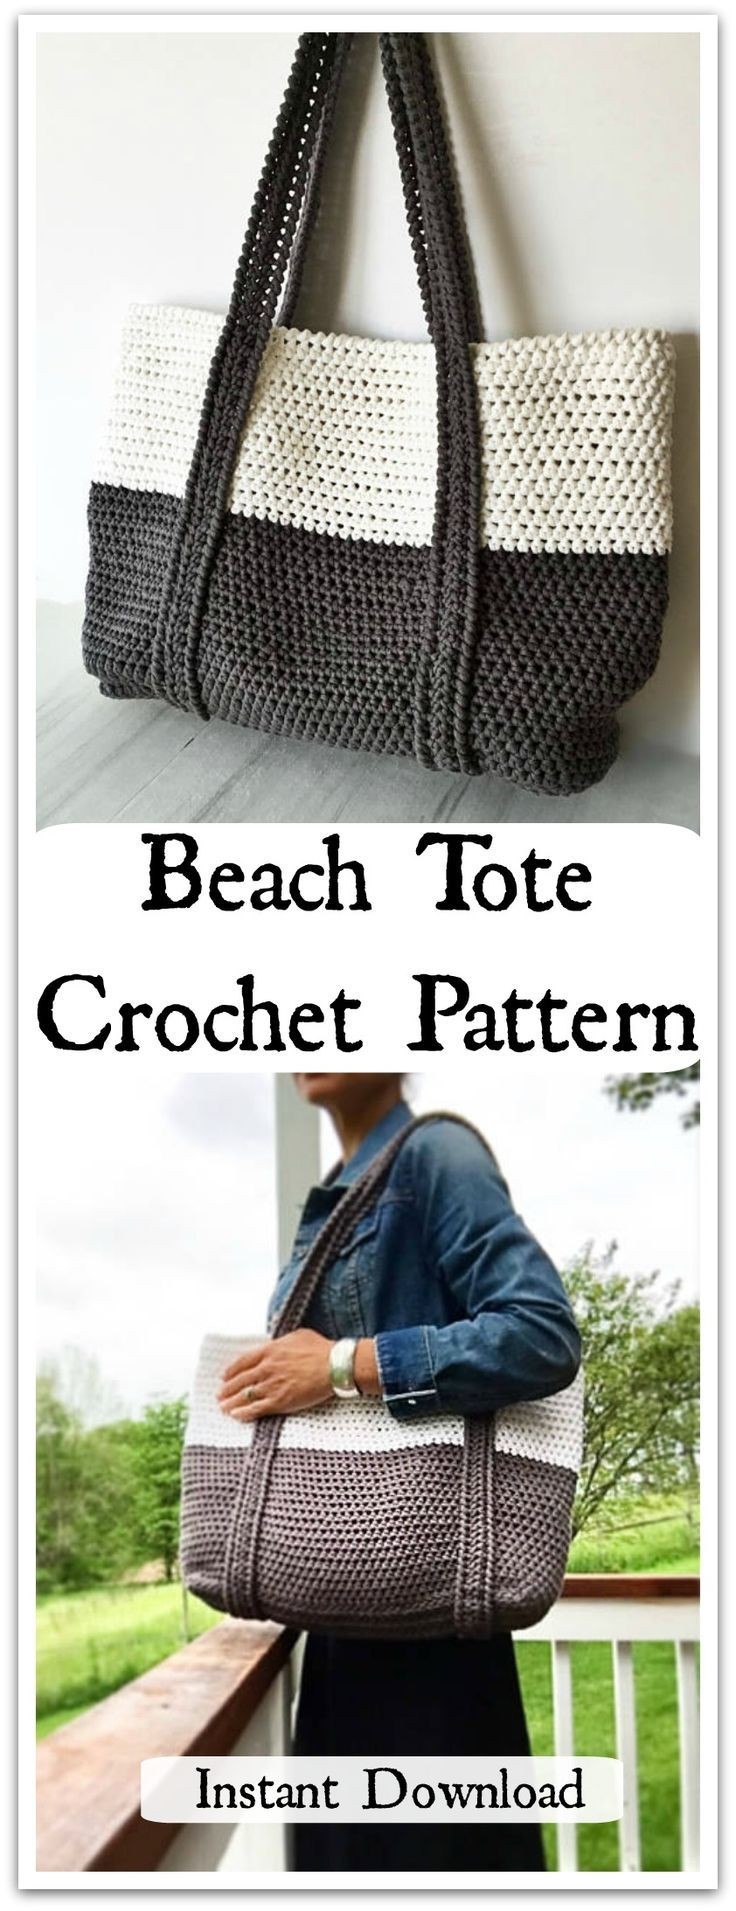 Ready for a day of fun in the sun... The Ryann colorblock beach tote is the perfect go-to summer bag for carrying all of the necessary beachy essentials. Instant PDF download. #ad #affiliate #crochet #pattern